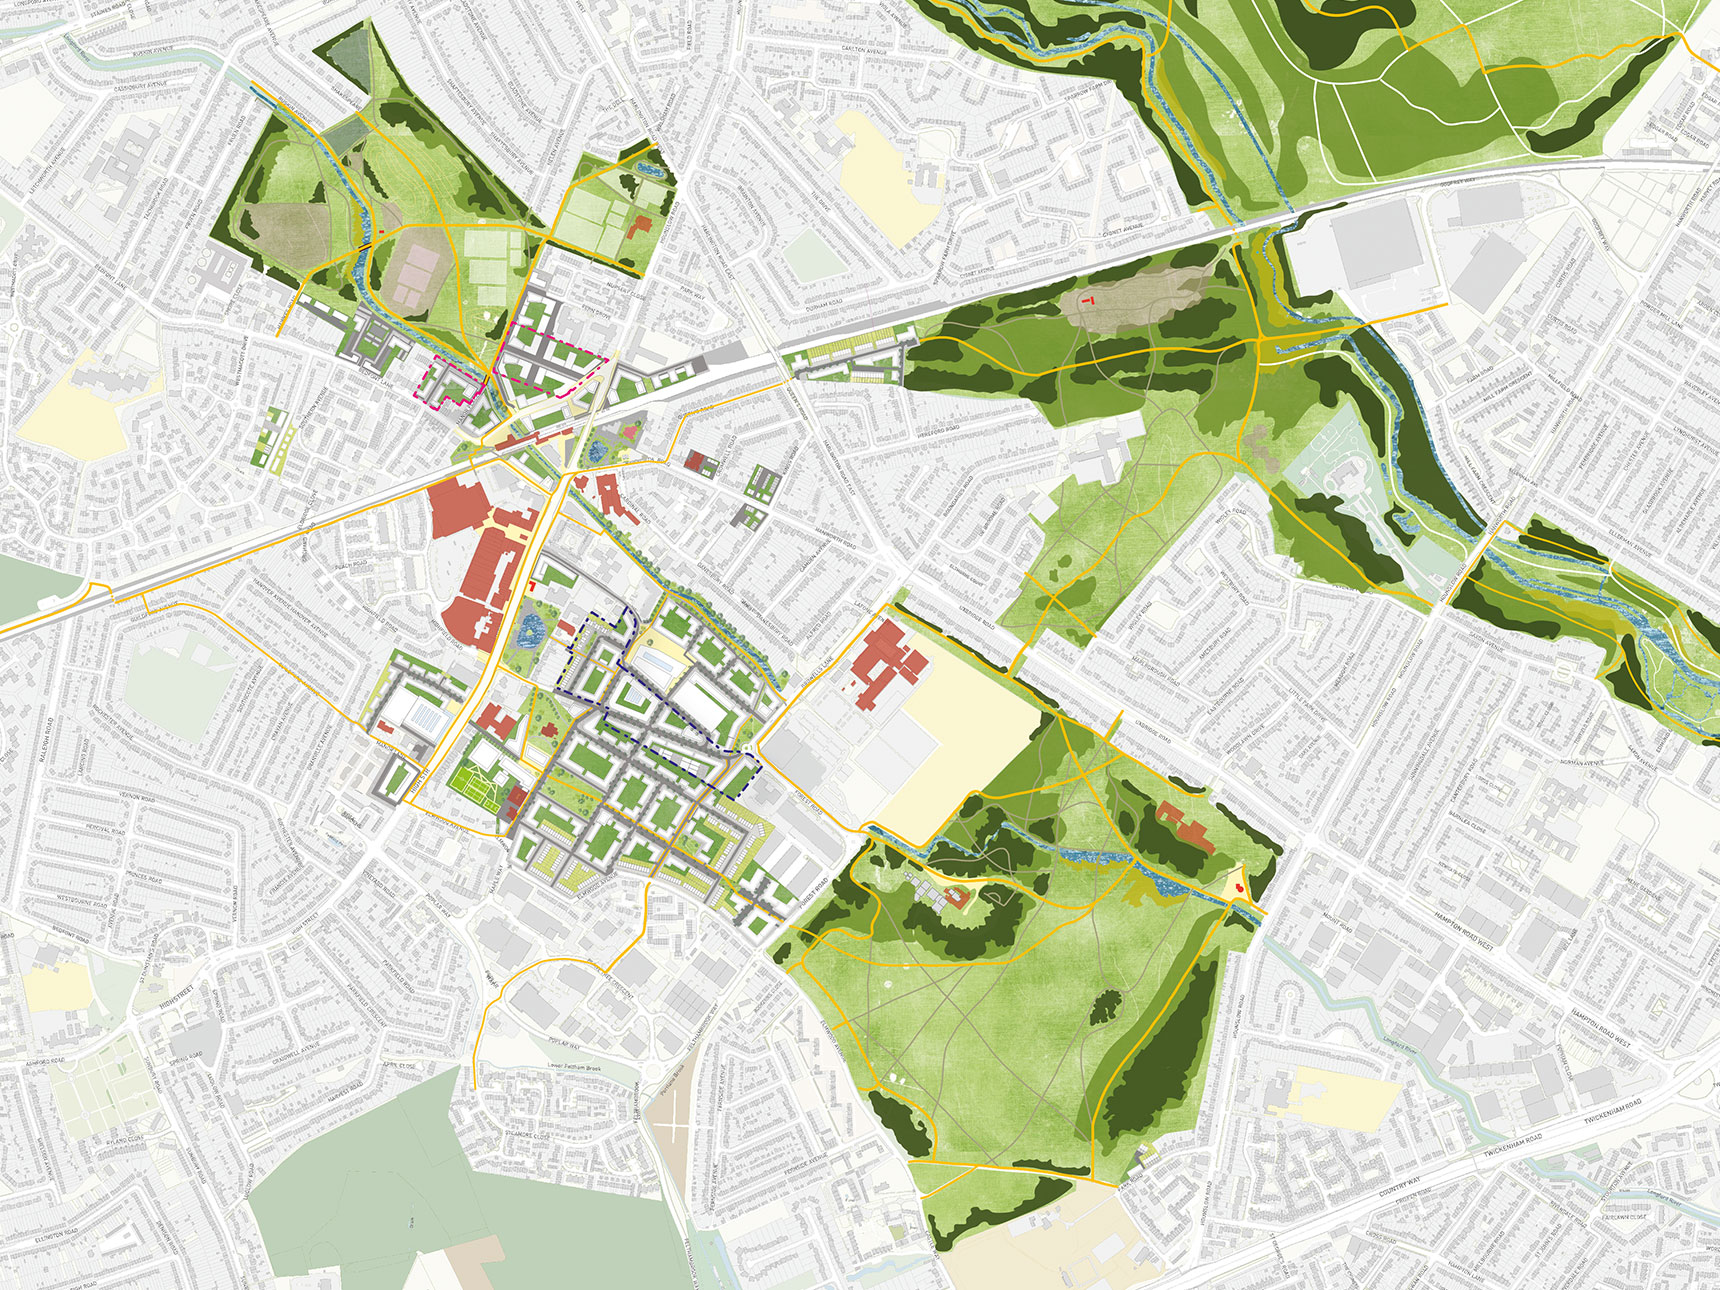 //uistudio.co.uk/wp-content/uploads/2015/11/4094_West-of-Borough_Masterplan-Feltham_1720x1290.jpg